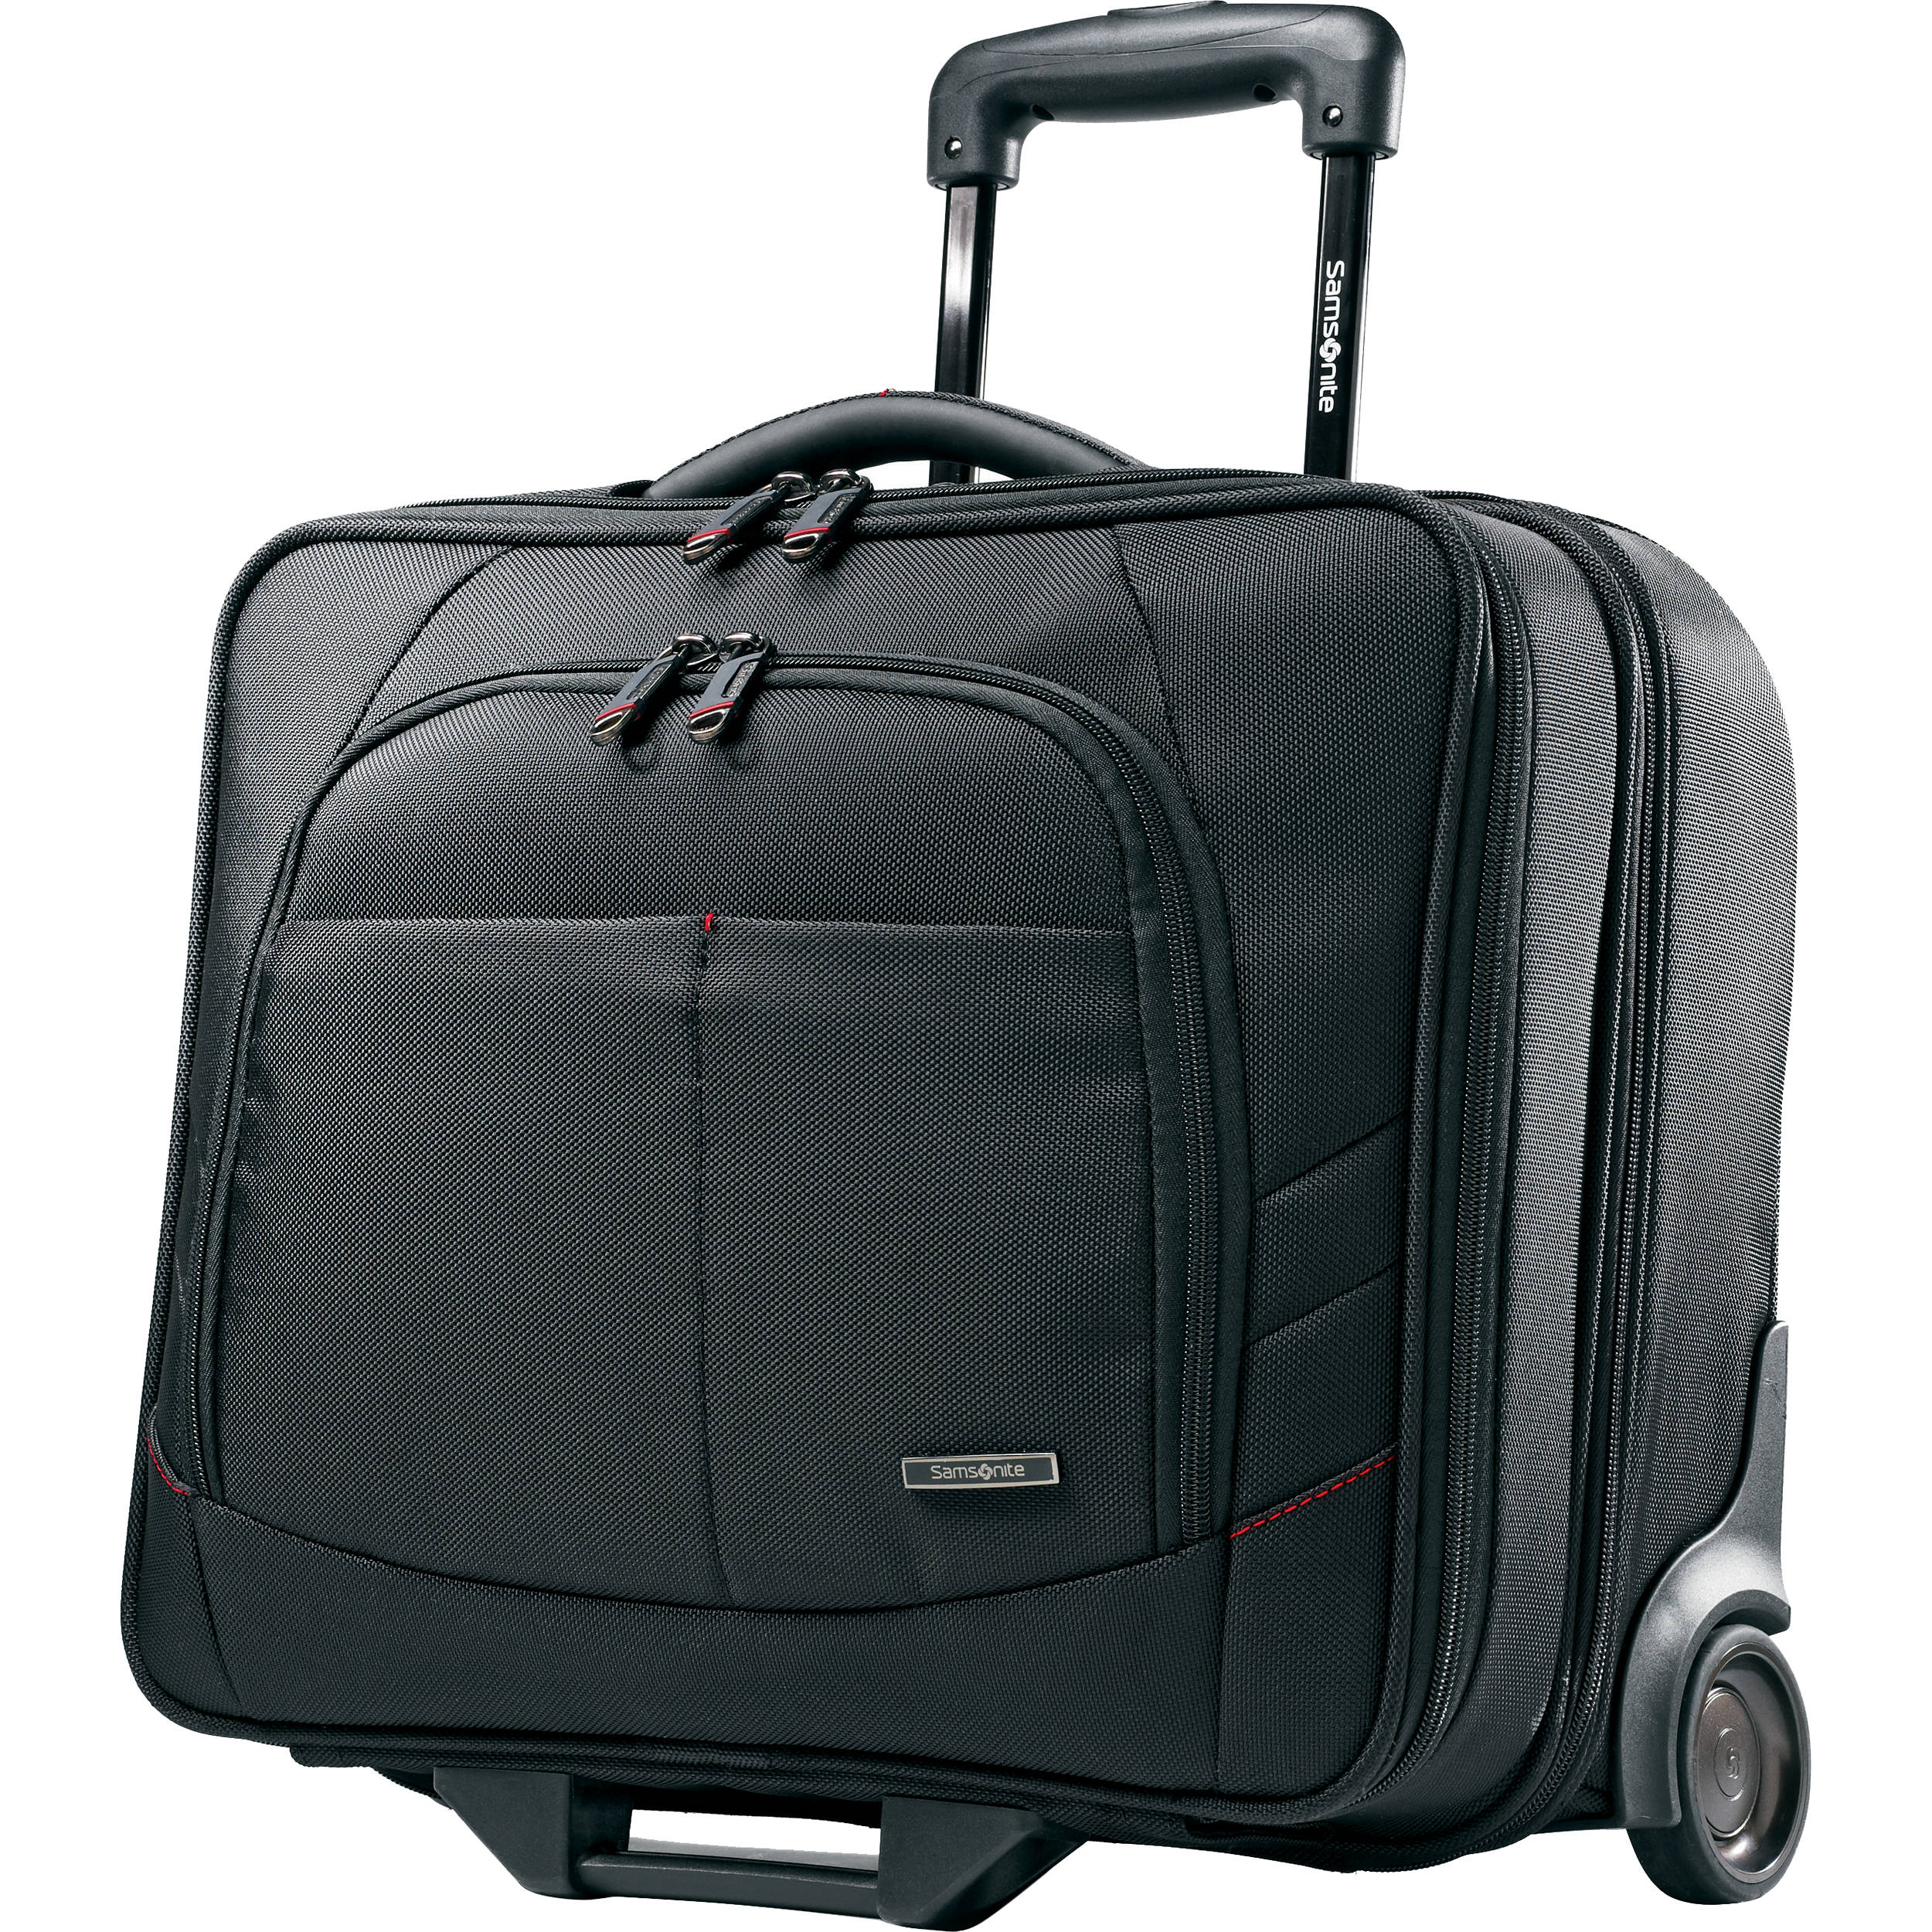 af425088fe6 Samsonite Xenon 2 Mobile Office Rolling Case with 13-15.6